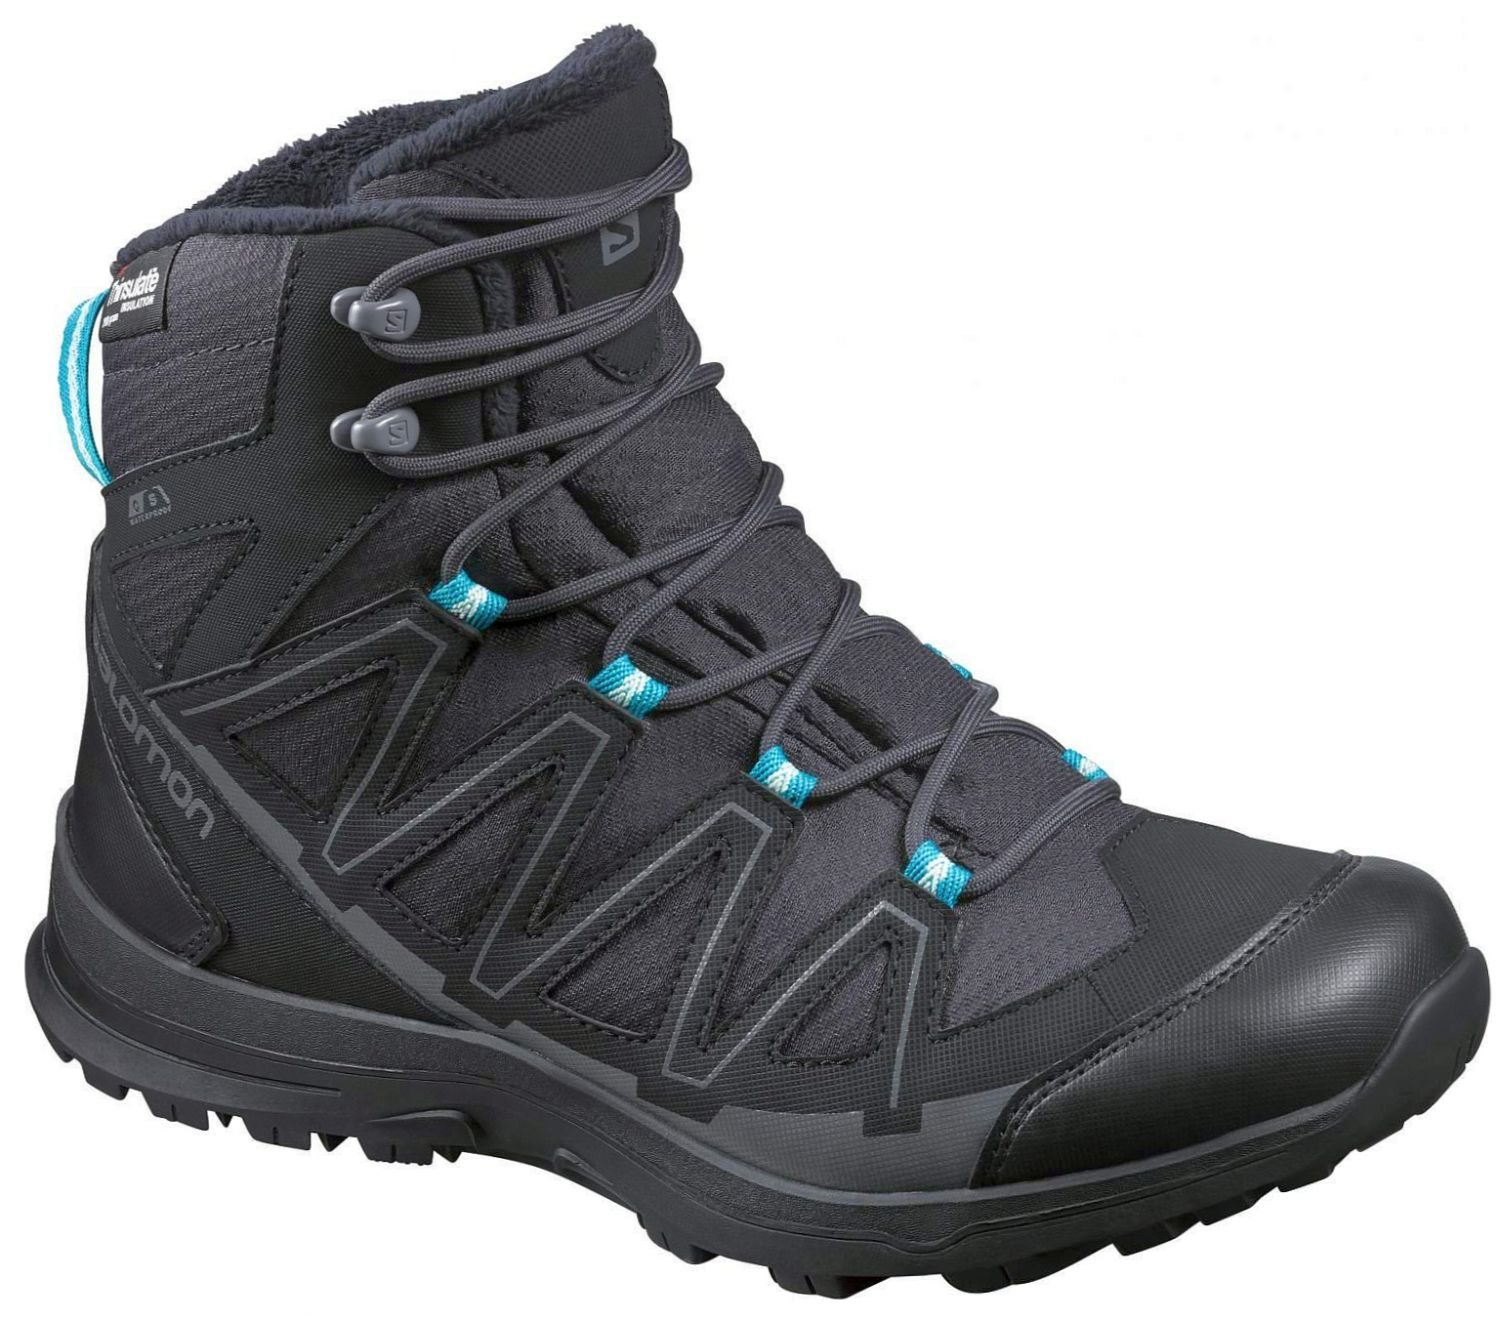 Salomon Damen Winterstiefel Woodsen TS